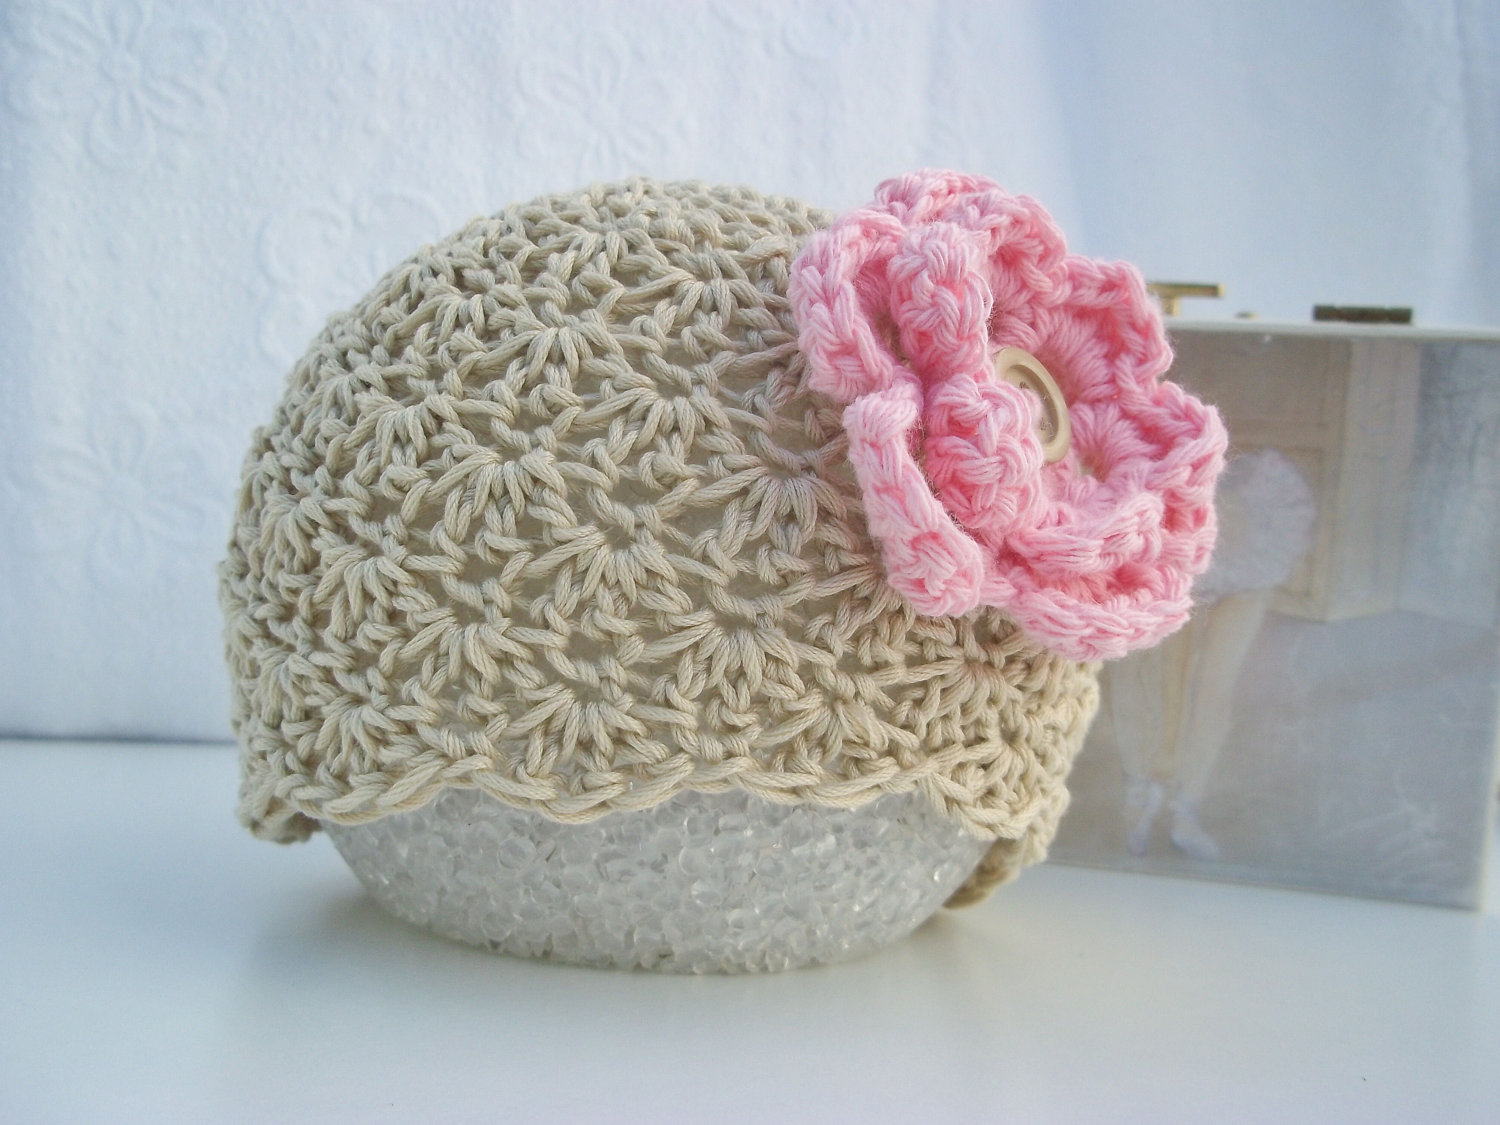 Free Crochet Flower Patterns For Baby Hats : Crochet Baby Hat - Baby Girl Hat - Newborn Baby Hat ...